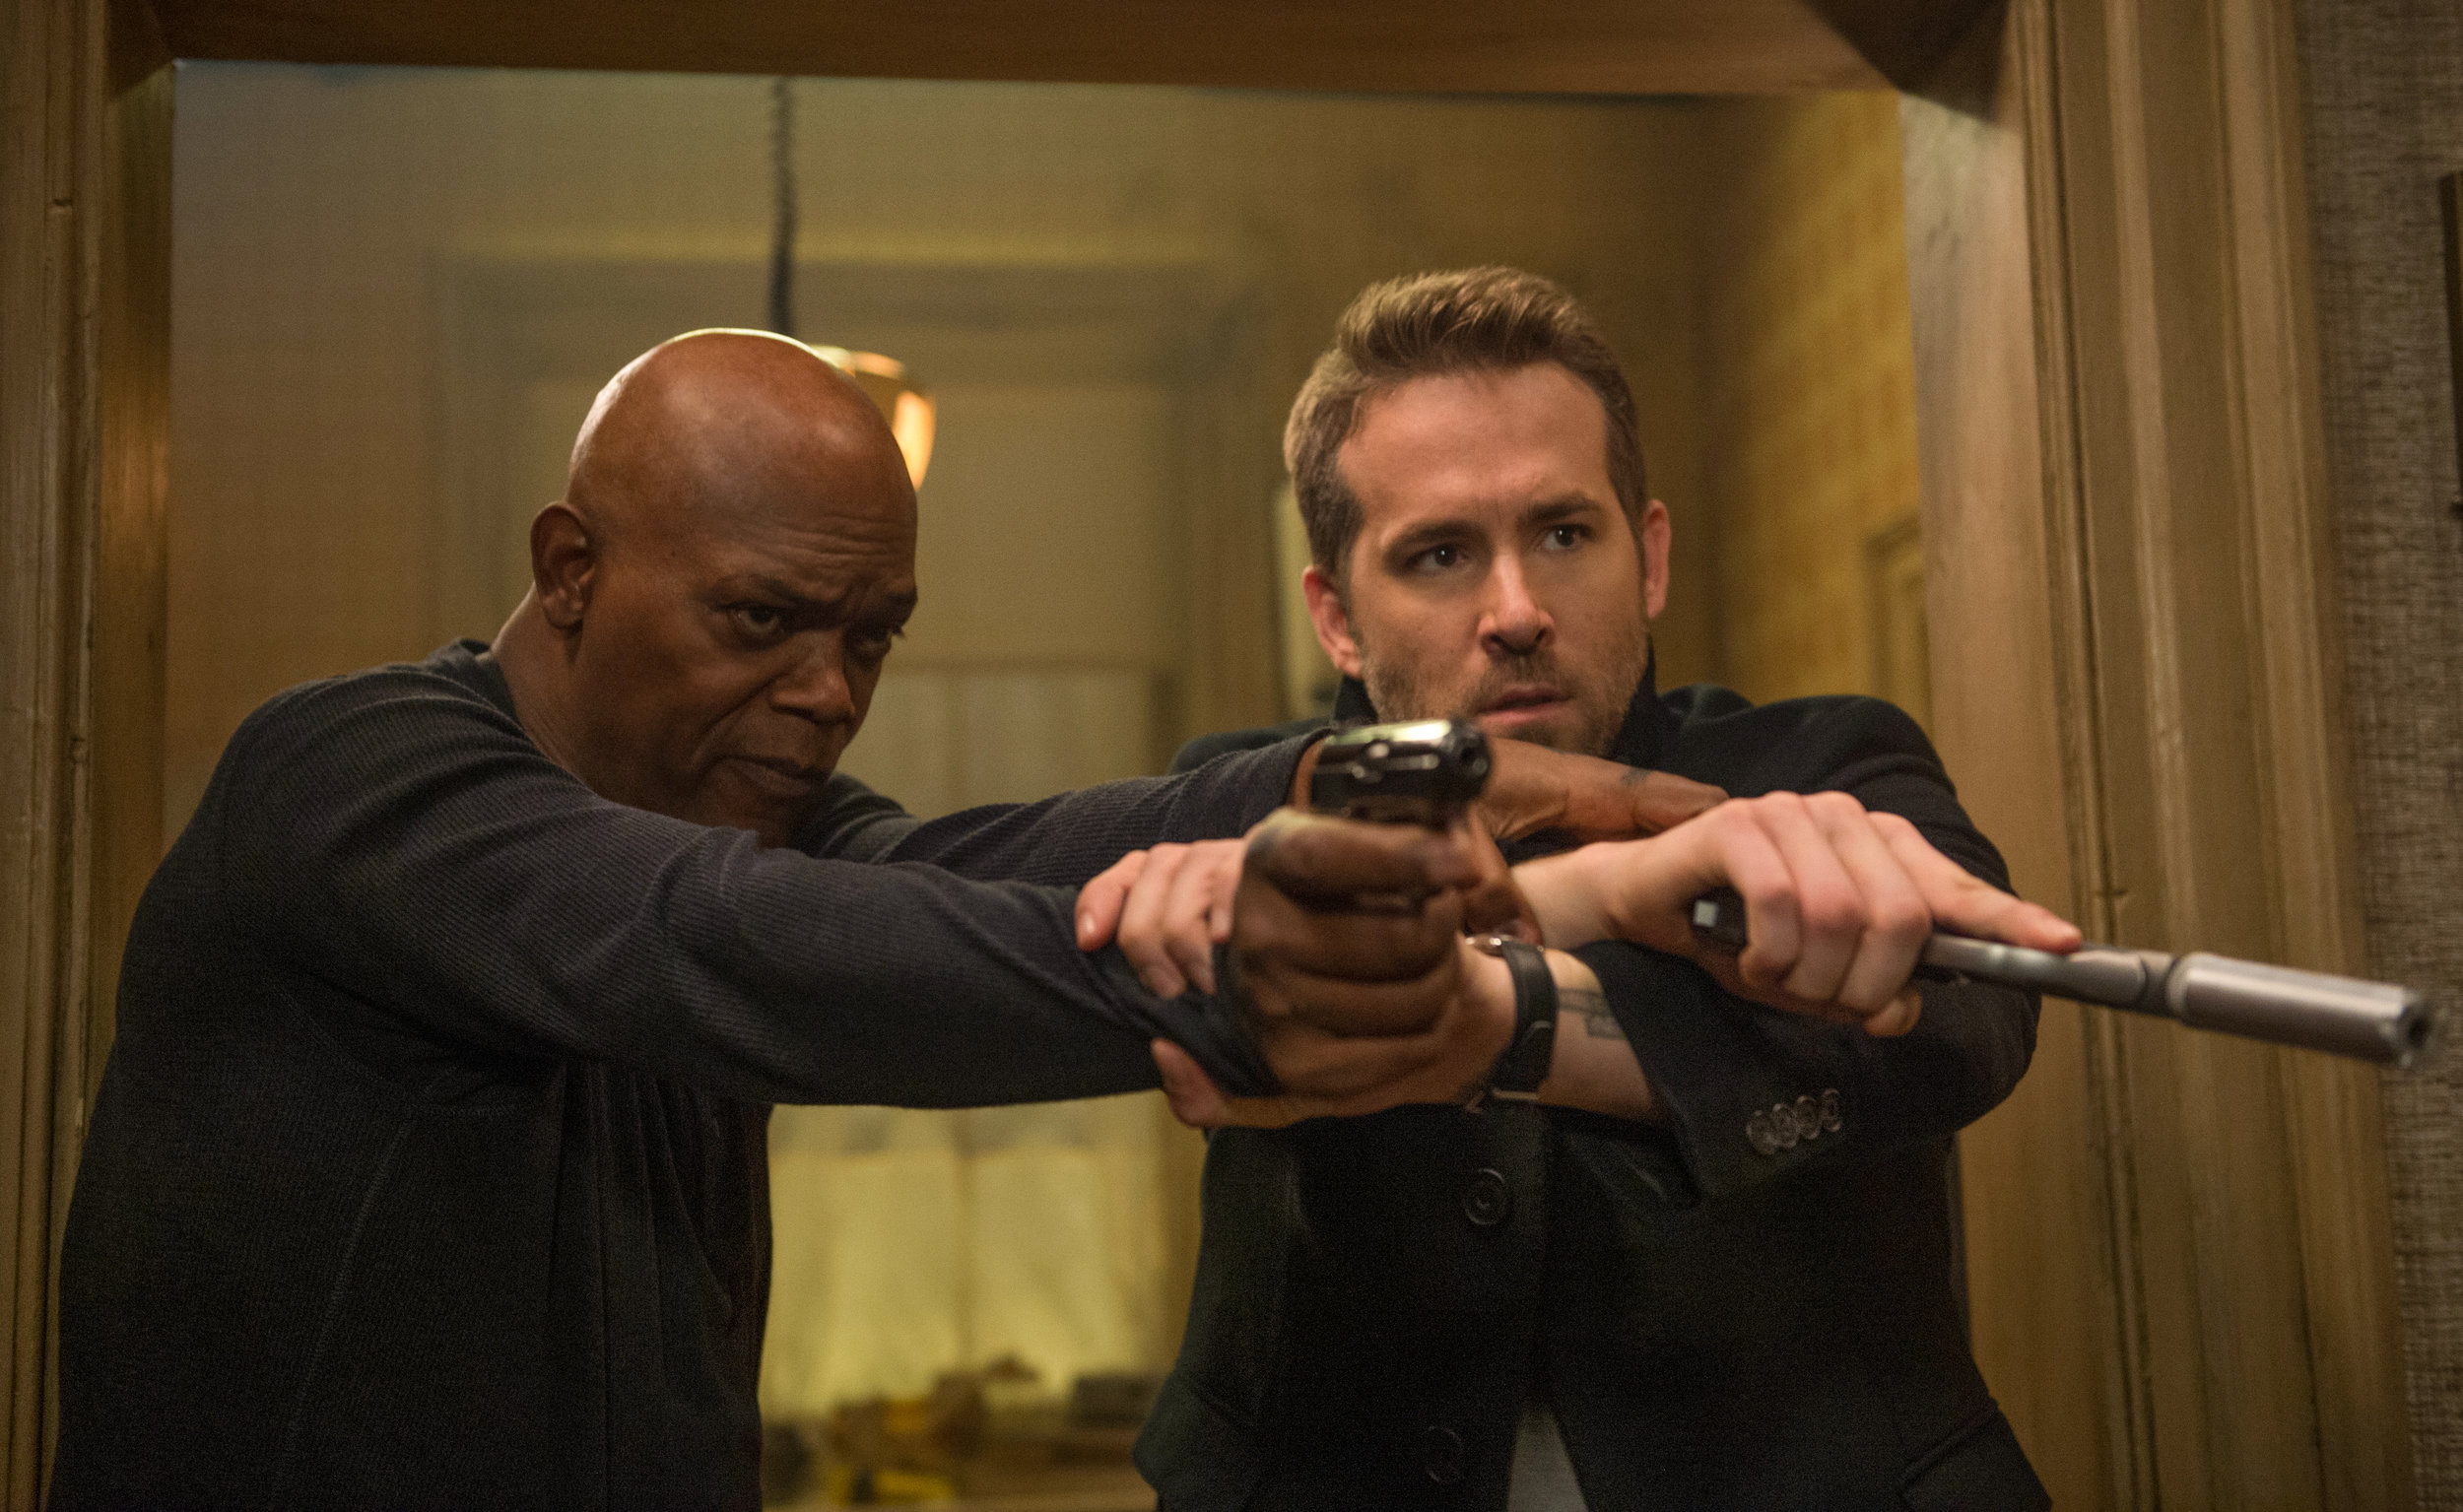 Jackson and Reynolds in The Hitman's Bodyguard.